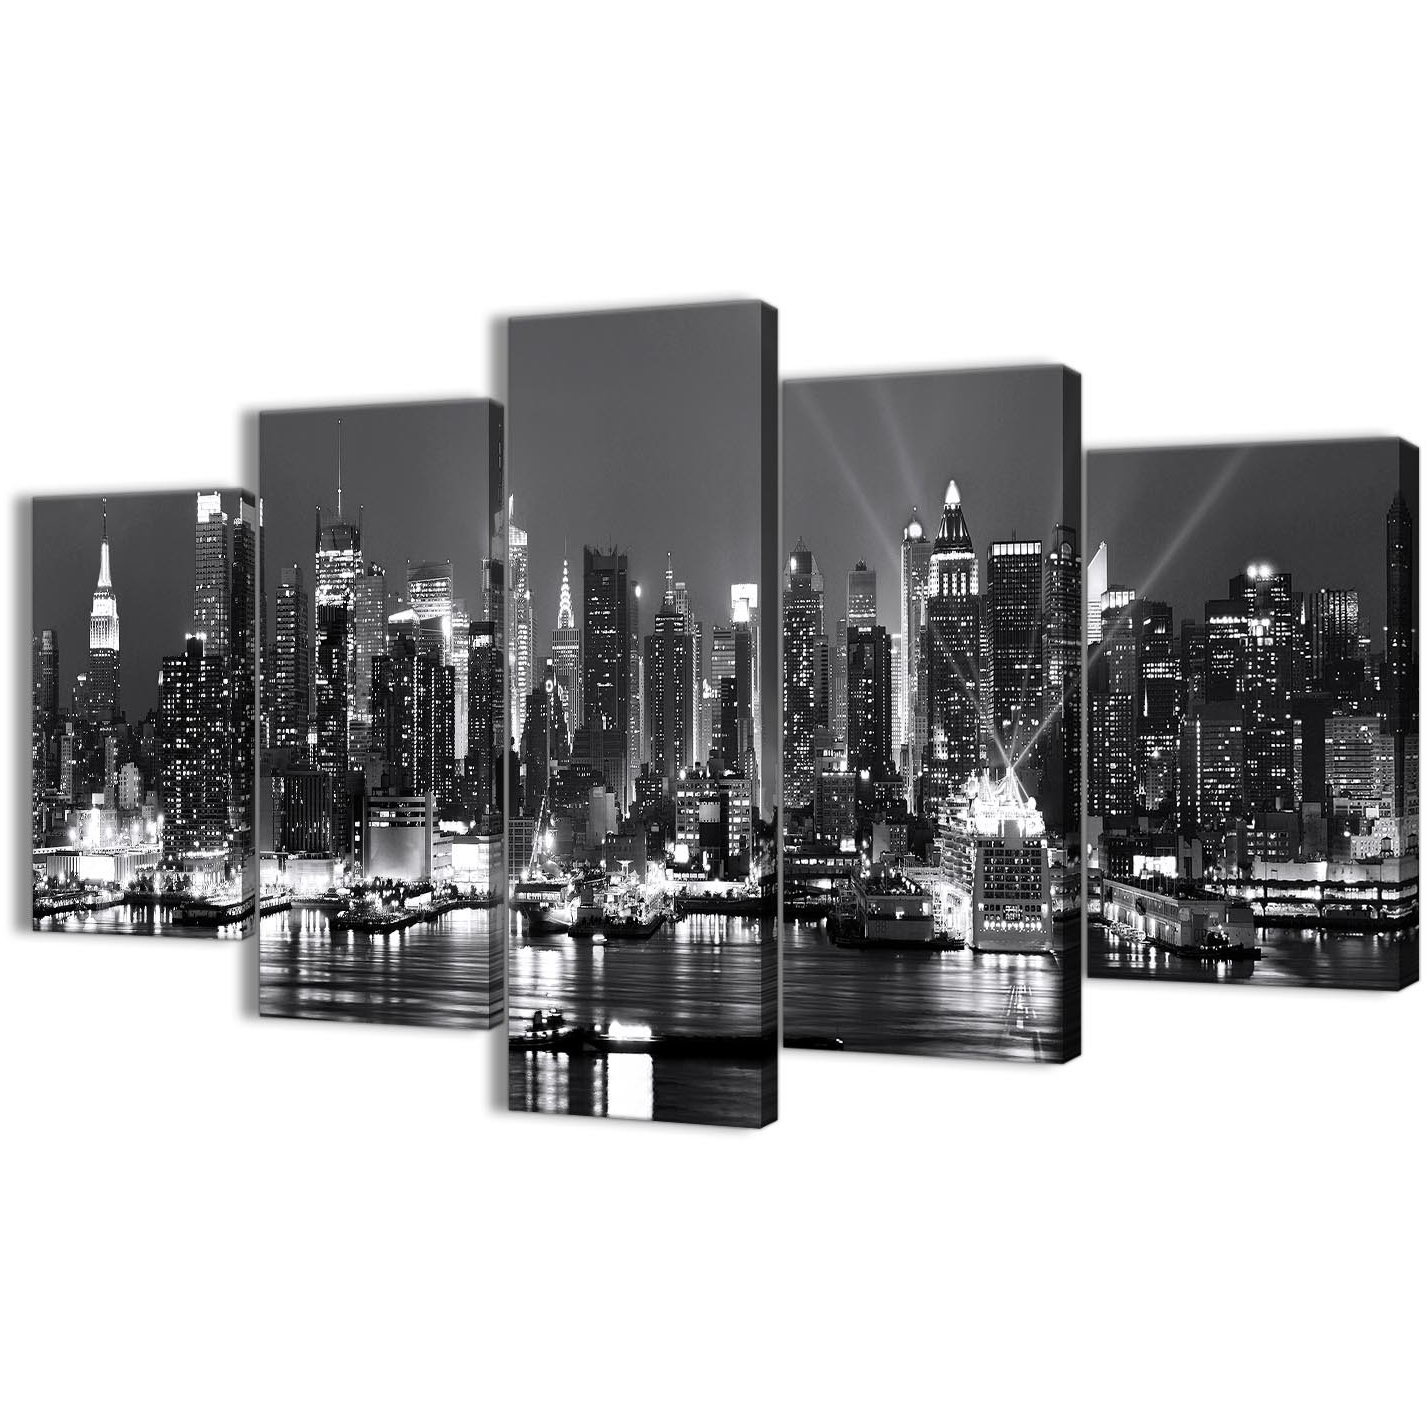 Preferred 5 Panel Landscape Canvas Wall Art Prints – New York Hudson River With New York Canvas Wall Art (View 7 of 15)